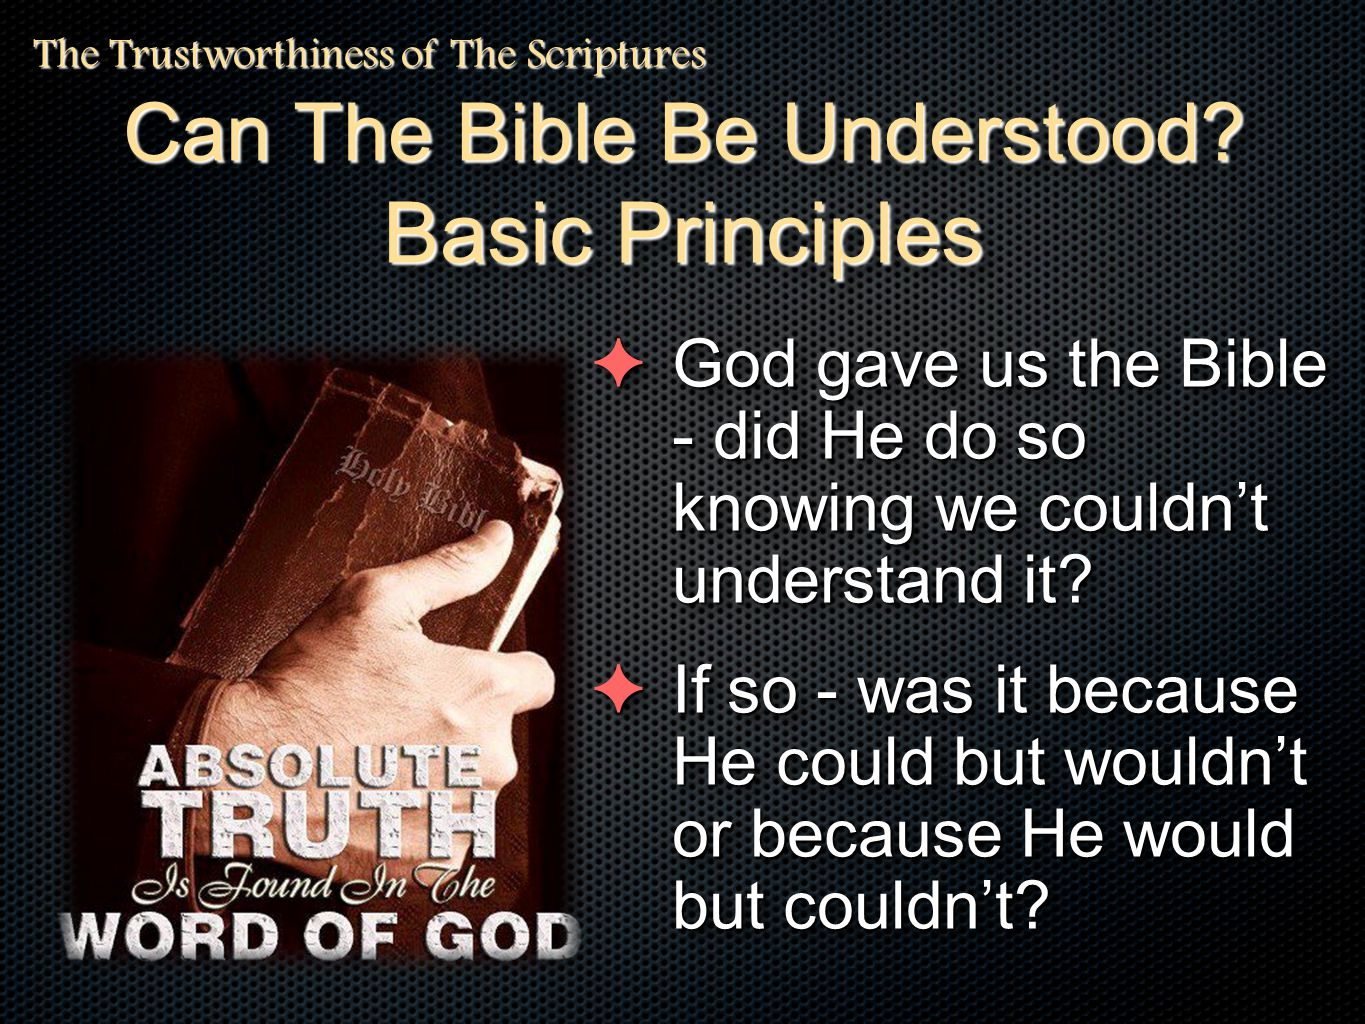 ✦ God gave us the Bible - did He do so knowing we couldn't understand it? ✦ If so - was it because He could but wouldn't or because He would but could